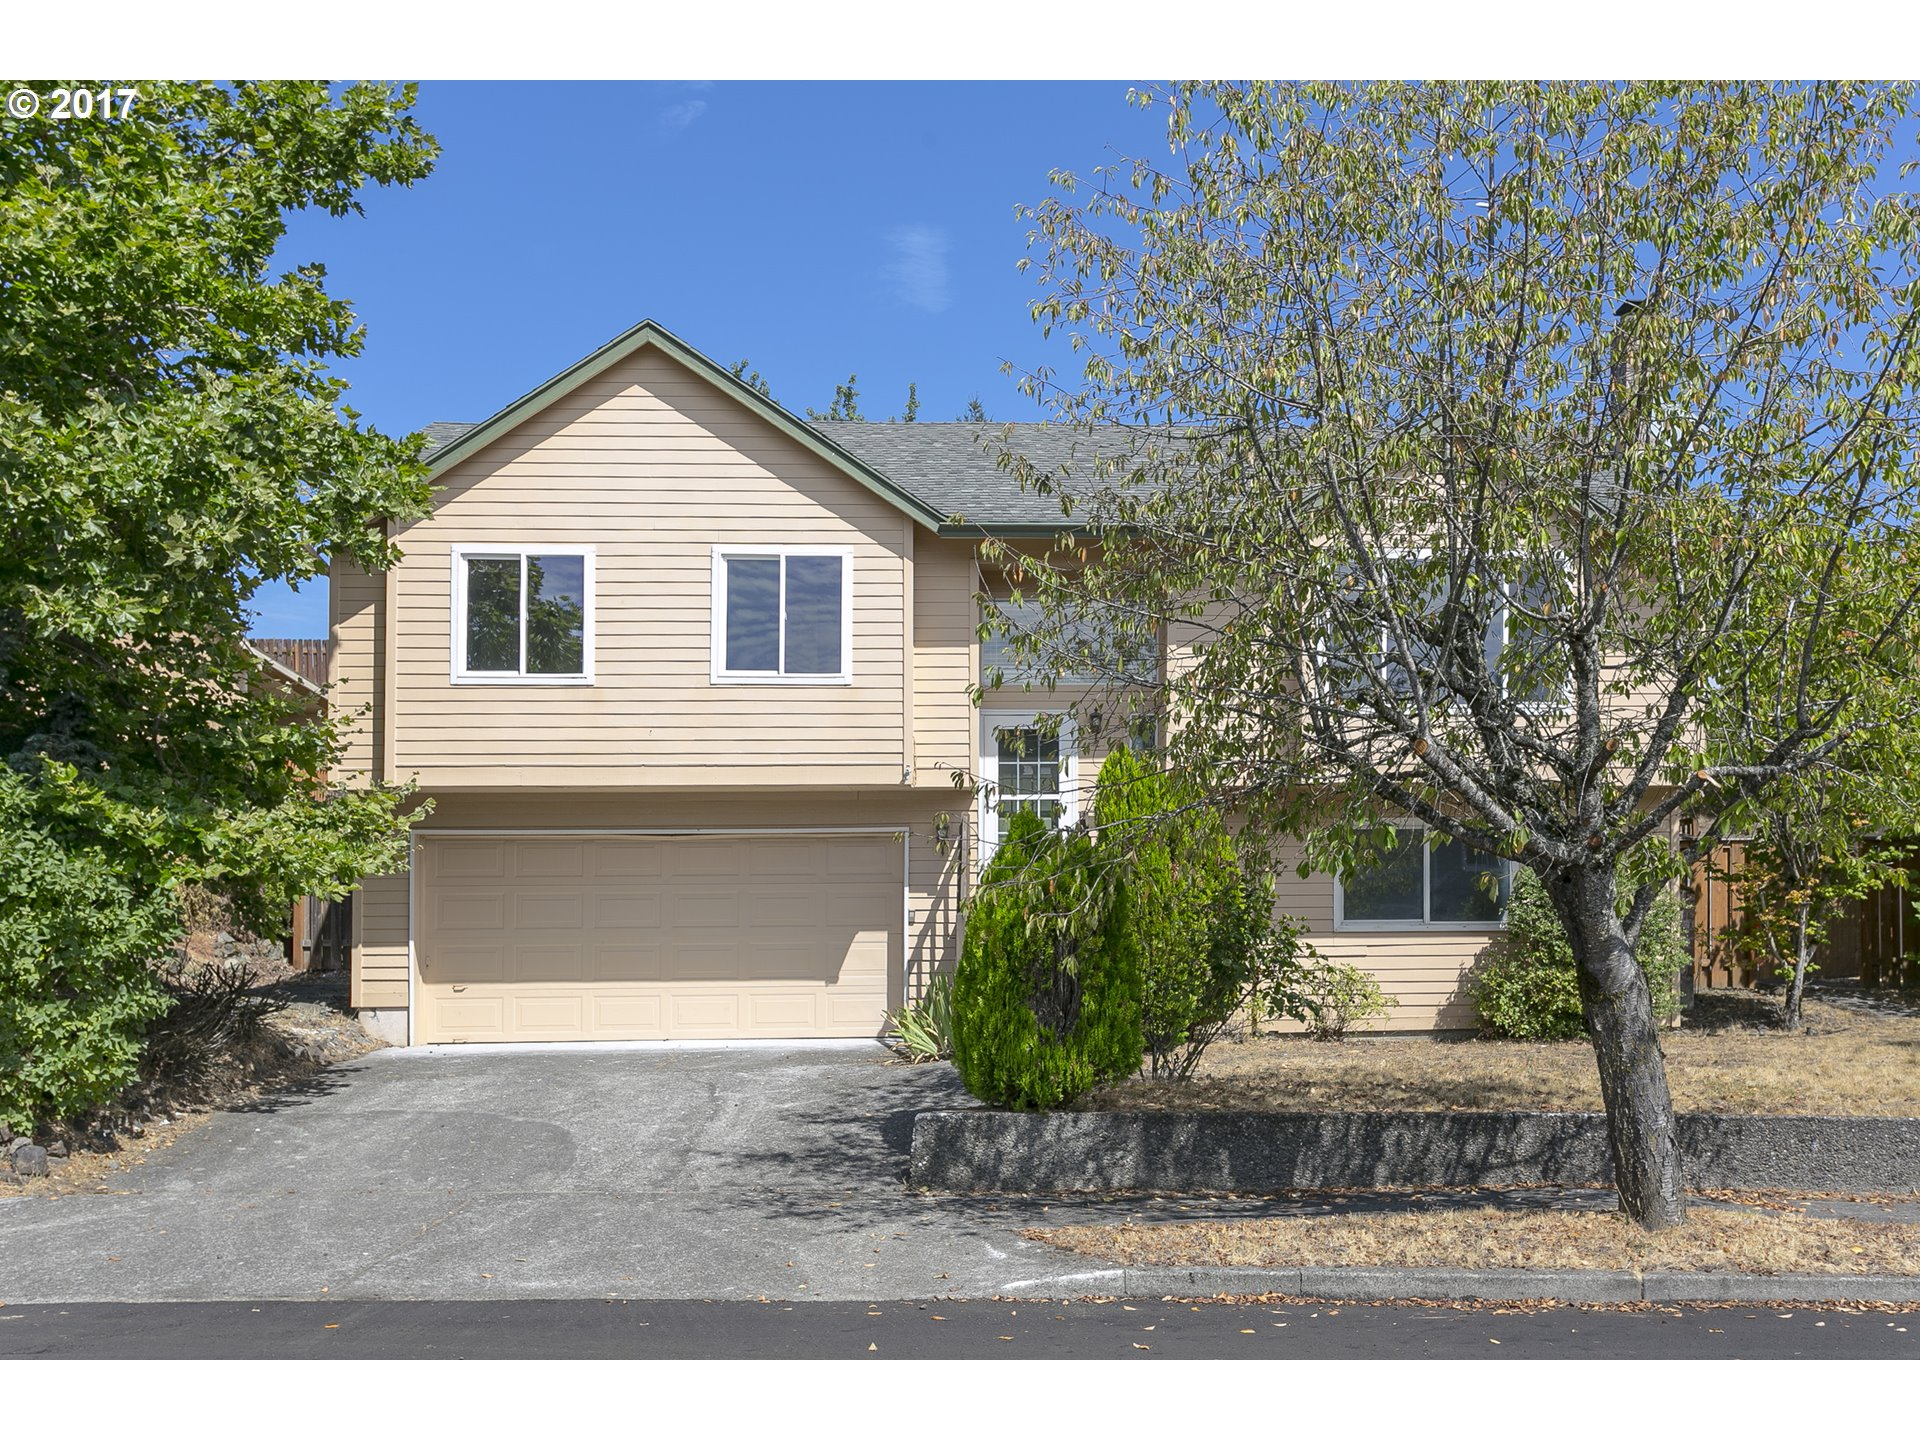 1866 sq. ft 4 bedrooms 3 bathrooms  House For Sale,Troutdale, OR